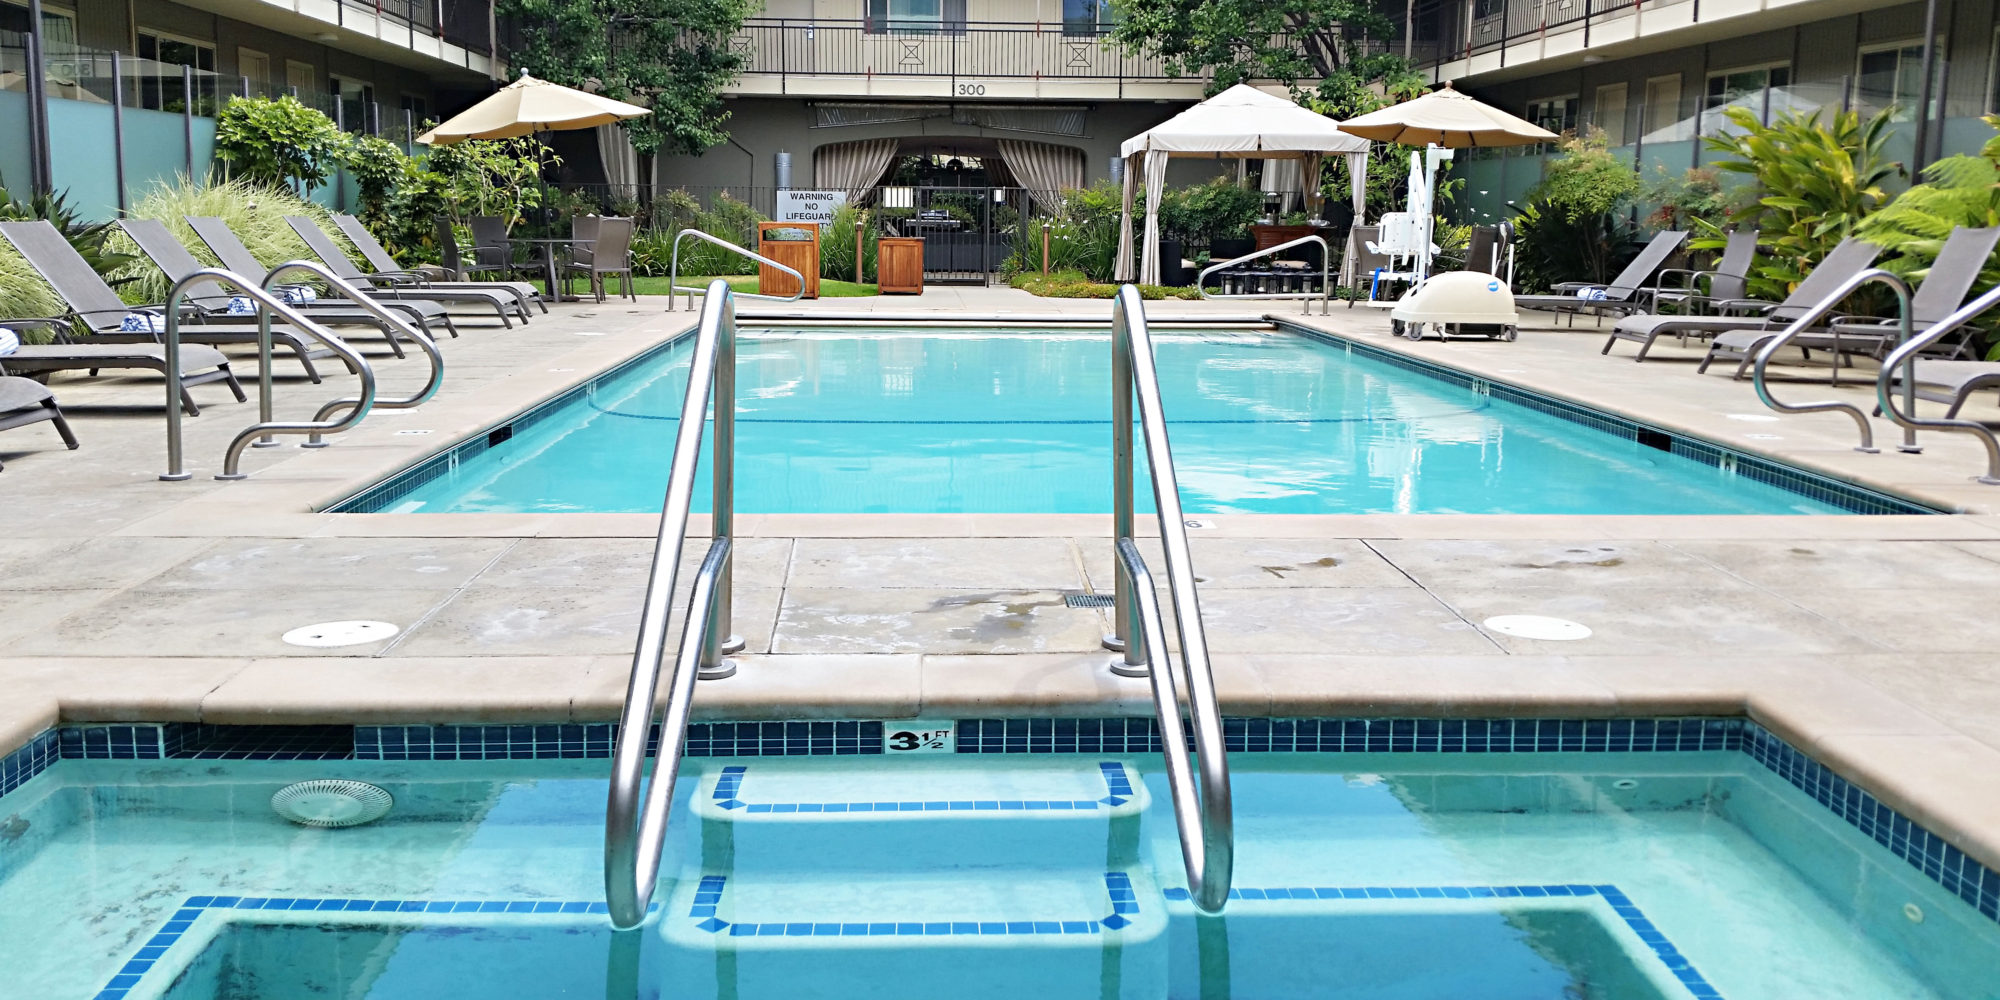 Pool and Spa